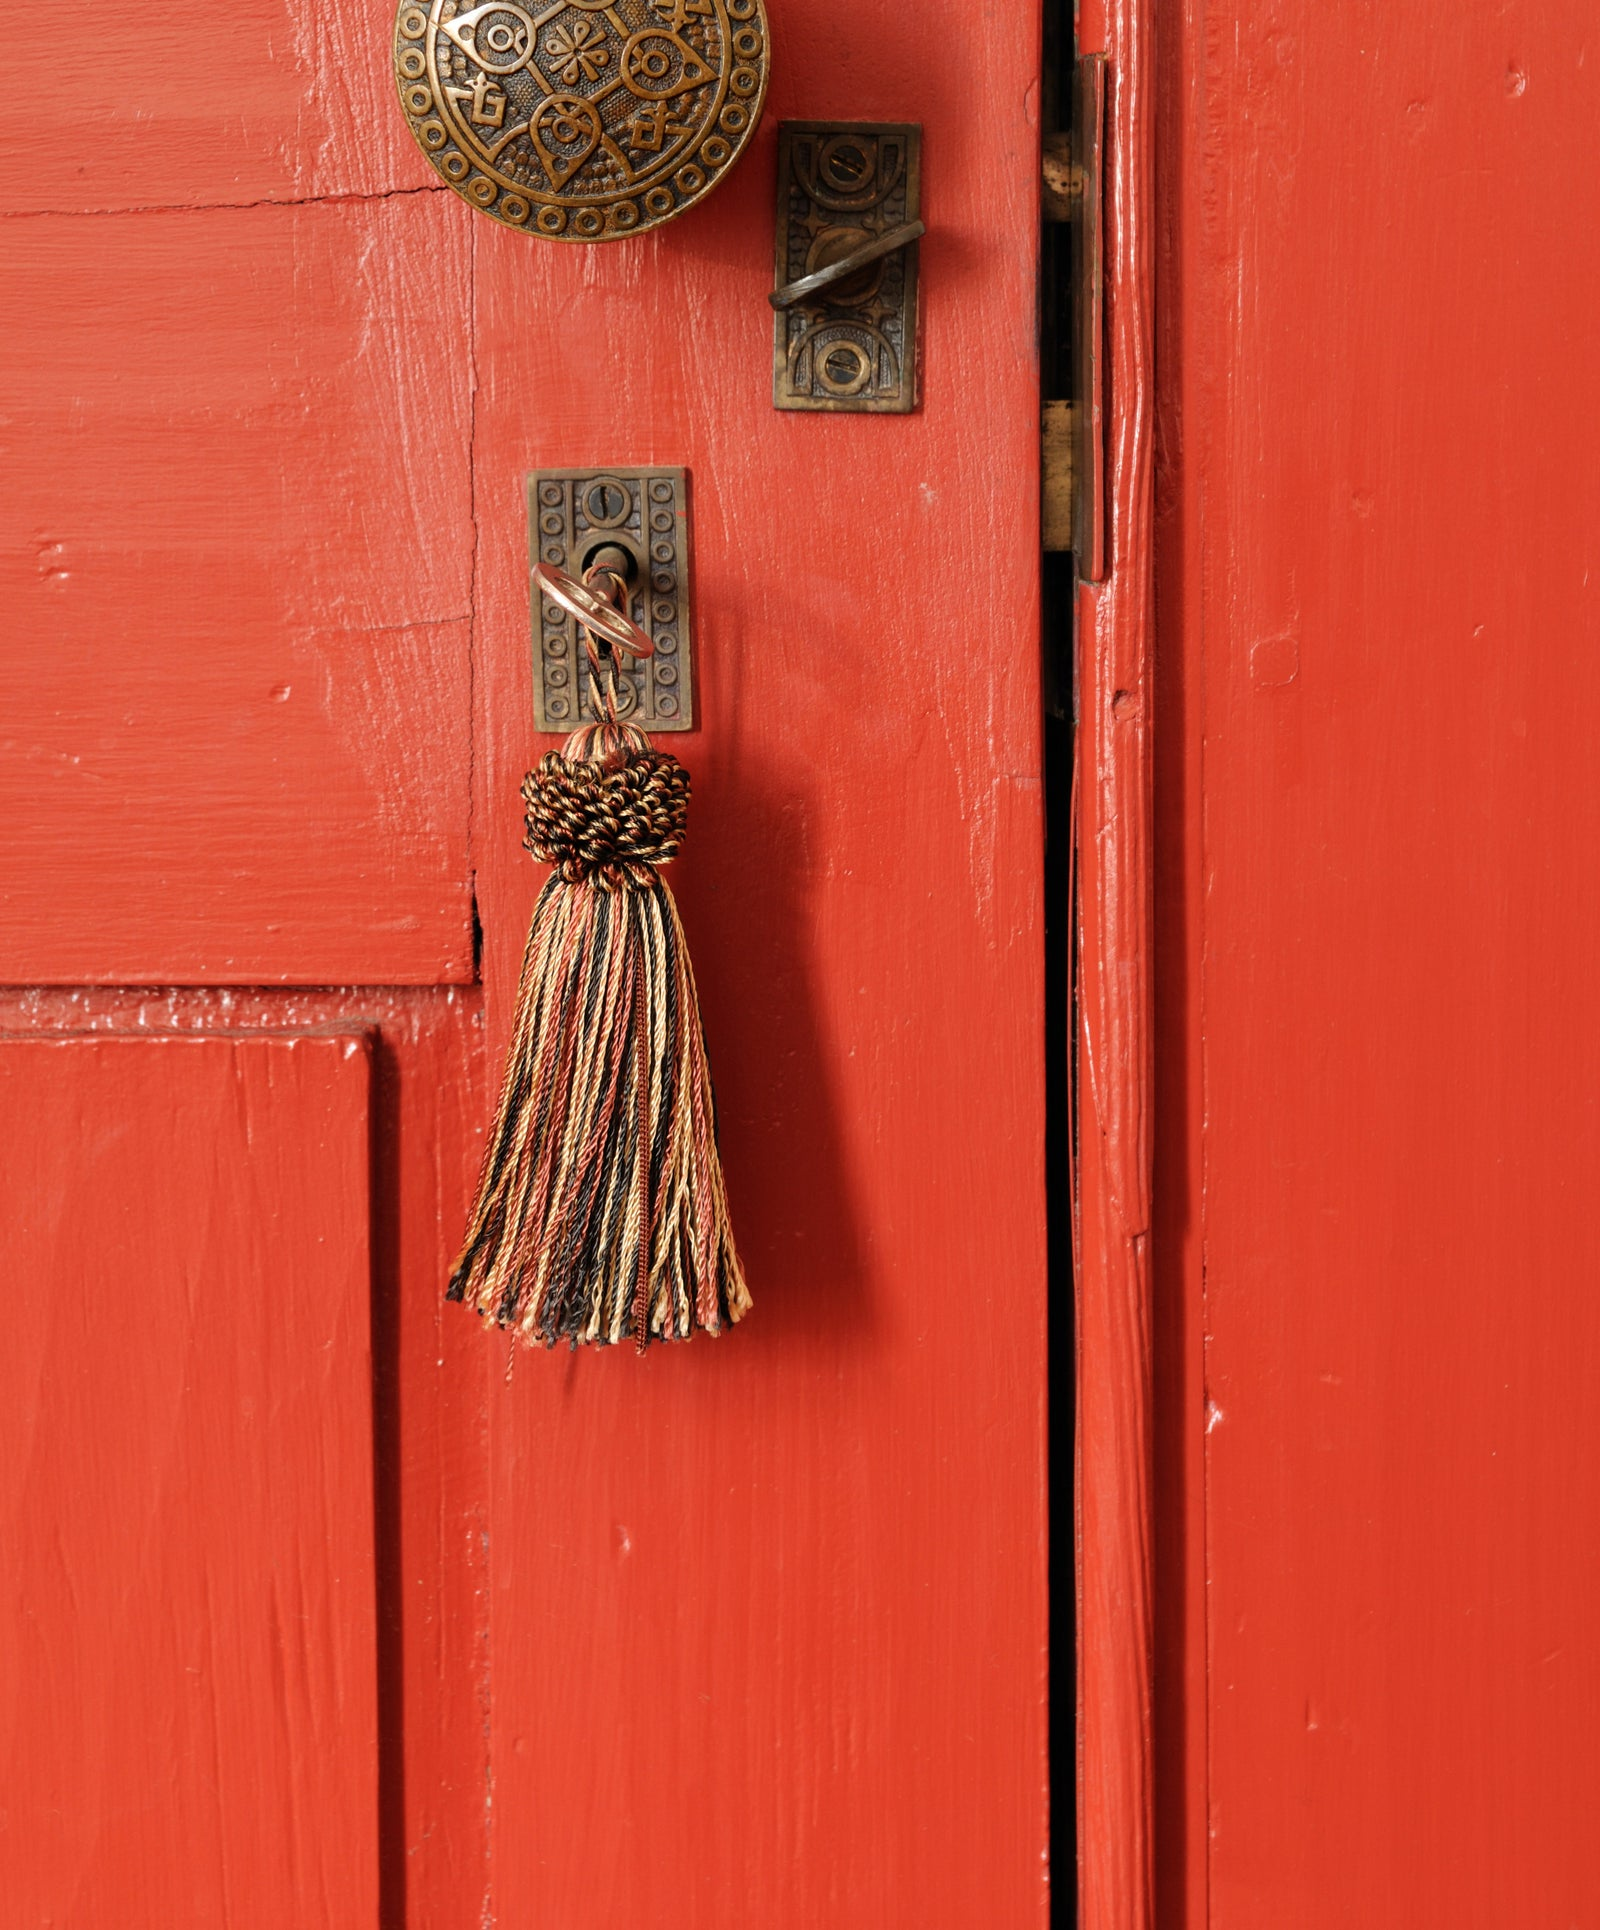 Can you escape what's behind this door?  Image of orange door with yarn tassel and antique handle.